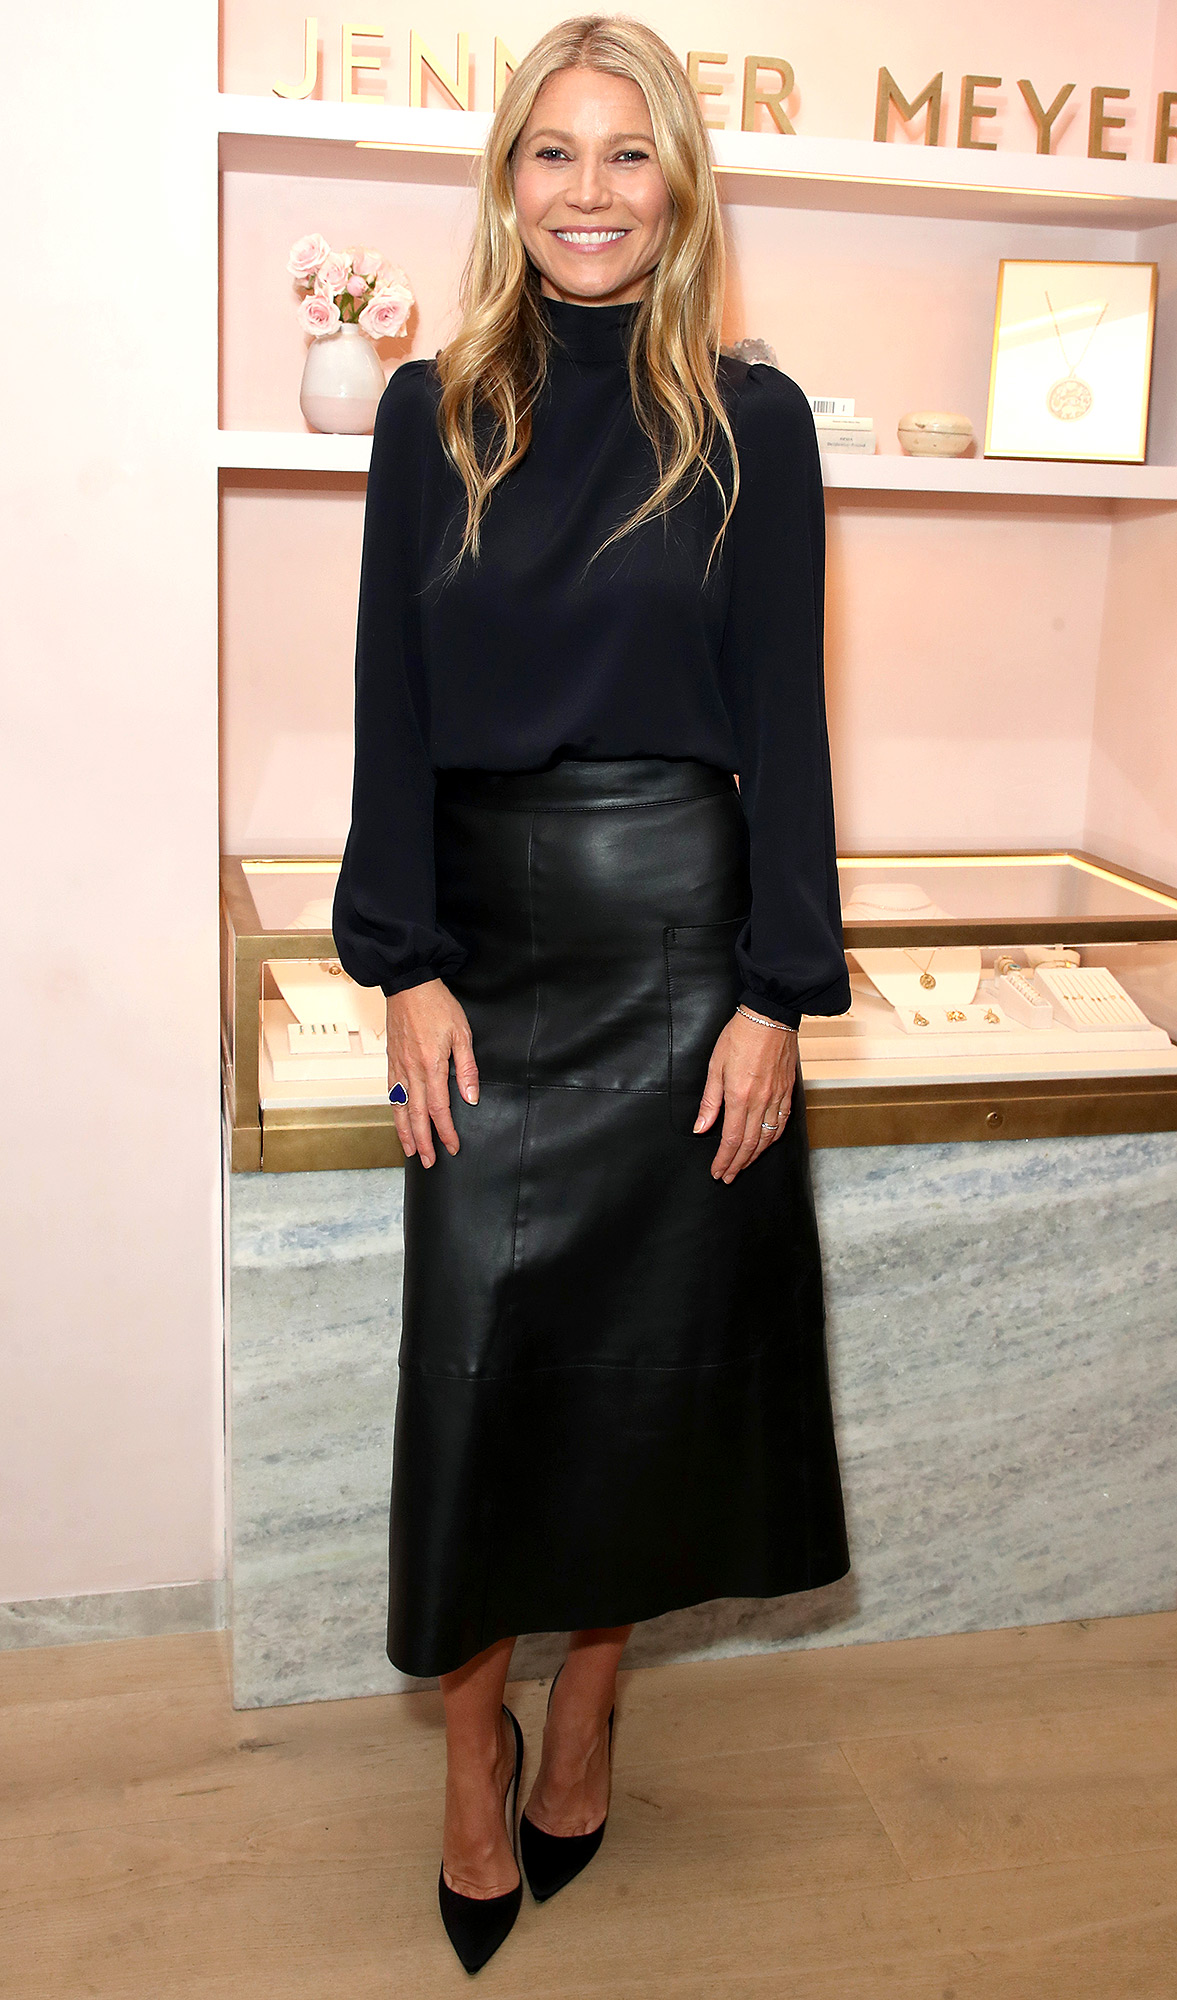 Jennifer Meyer Boutique opening party, Los Angeles, USA - 17 Oct 2018